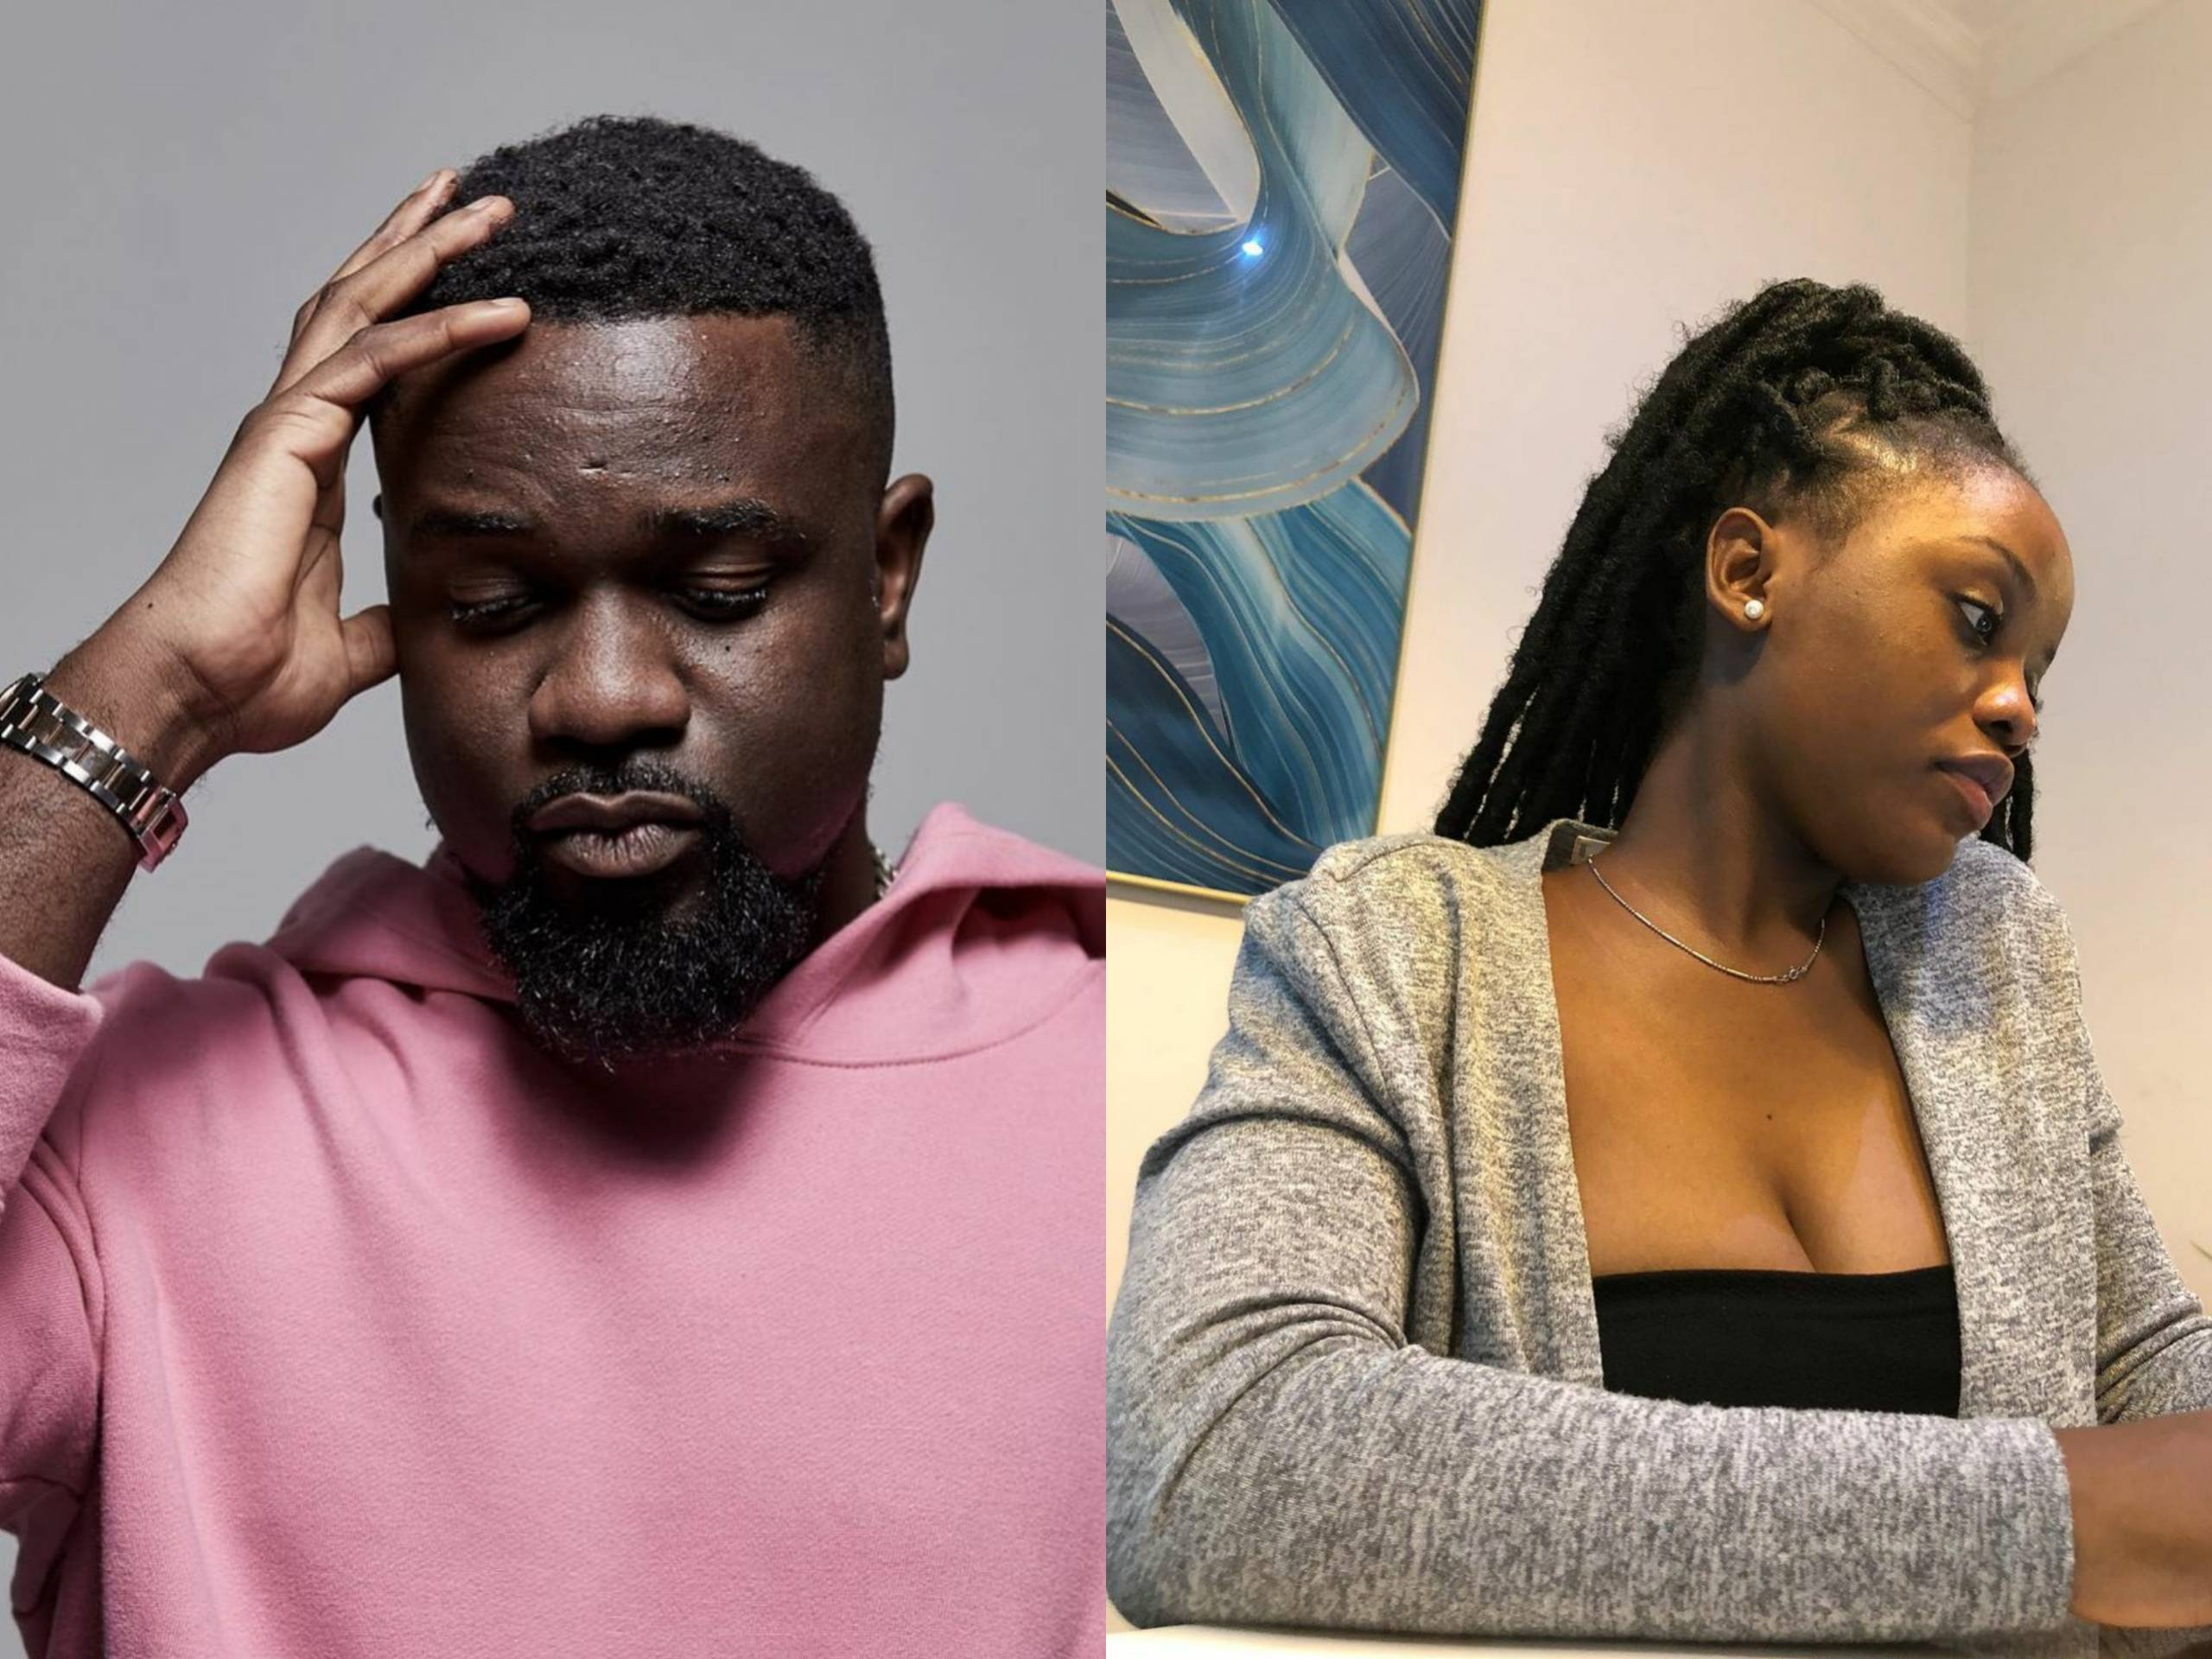 Photo Of GH Rapper Sarkodie And Singer Gyakie